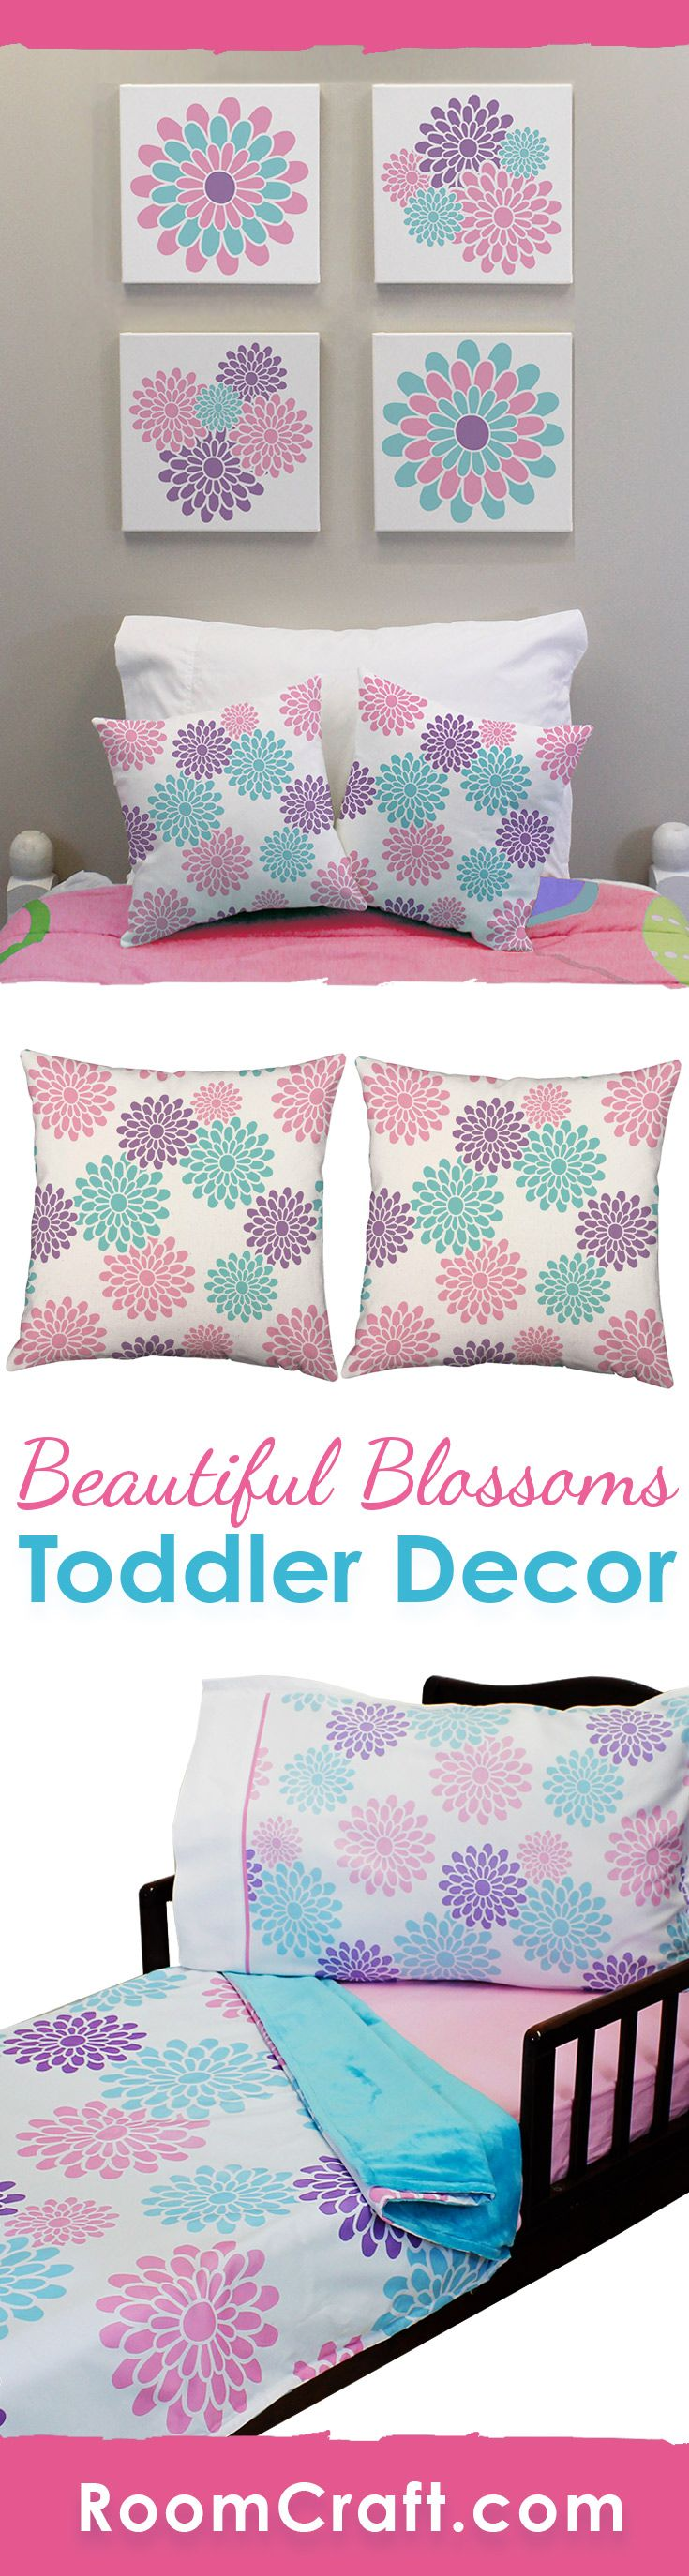 Colorful flower bedding - Beautiful Blossoms Toddler Bedding Set